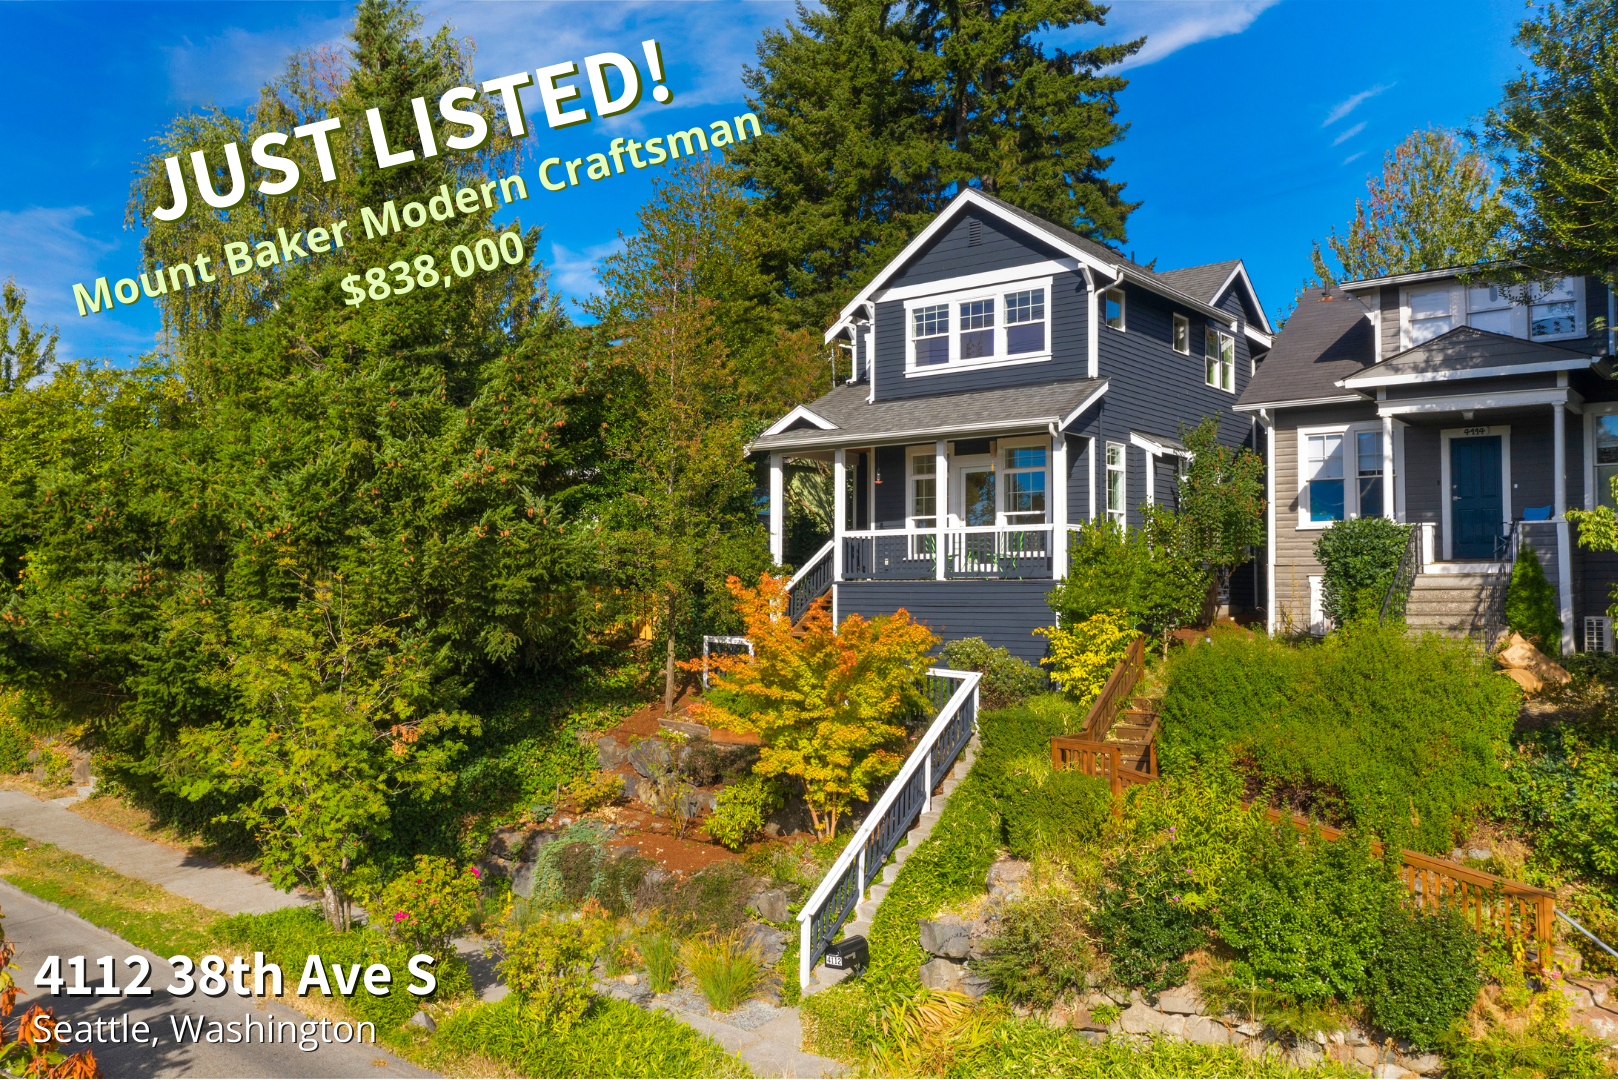 4112 38th Ave S - JUST LISTED!